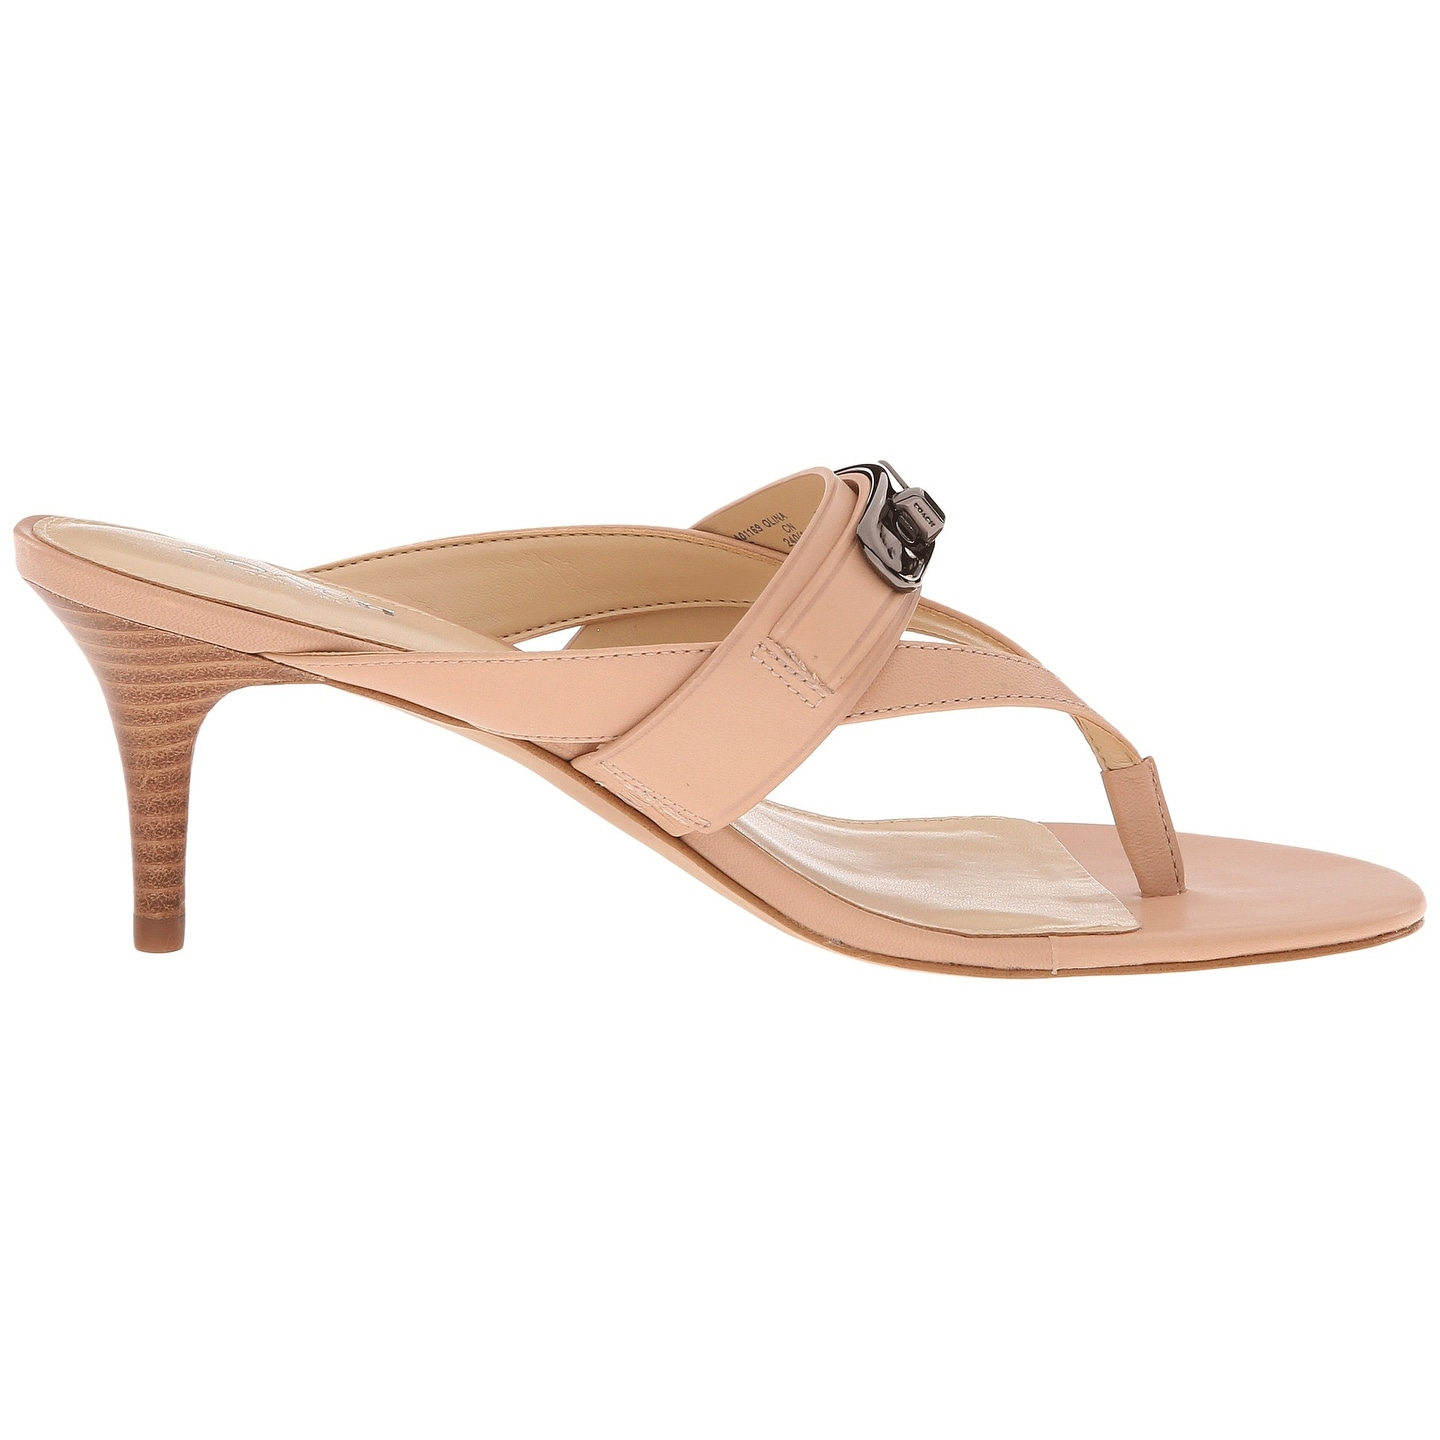 1a9a9d991 Shop Coach Womens Olina Semi Matte Calf Leather Split Toe Casual T-Strap  Sandals - Free Shipping Today - Overstock - 15668388